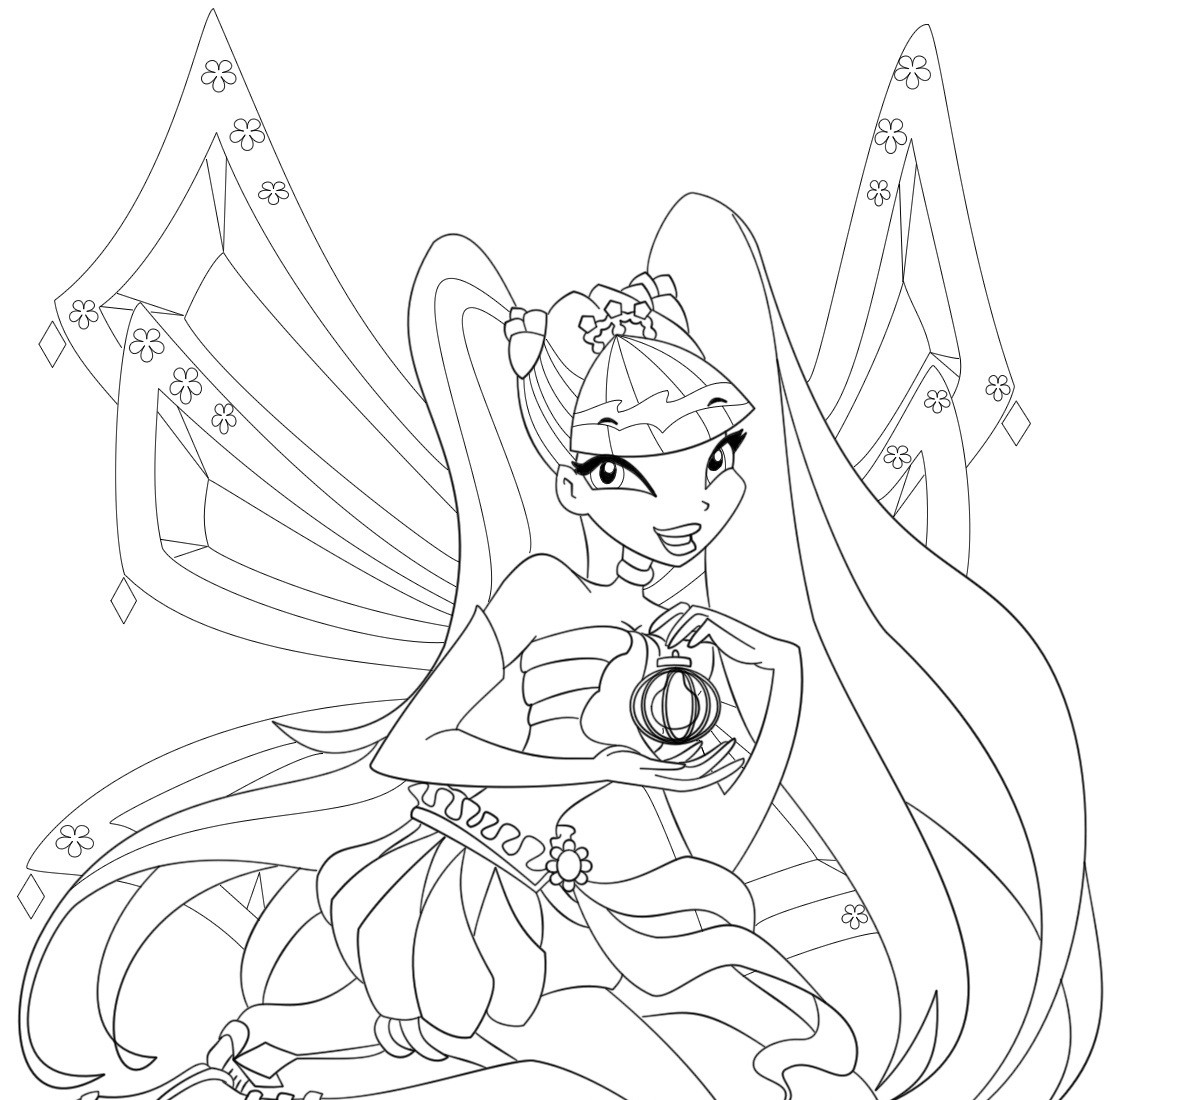 Winx Coloring Pages For Kids  Free Printable Winx Club Coloring Pages For Kids